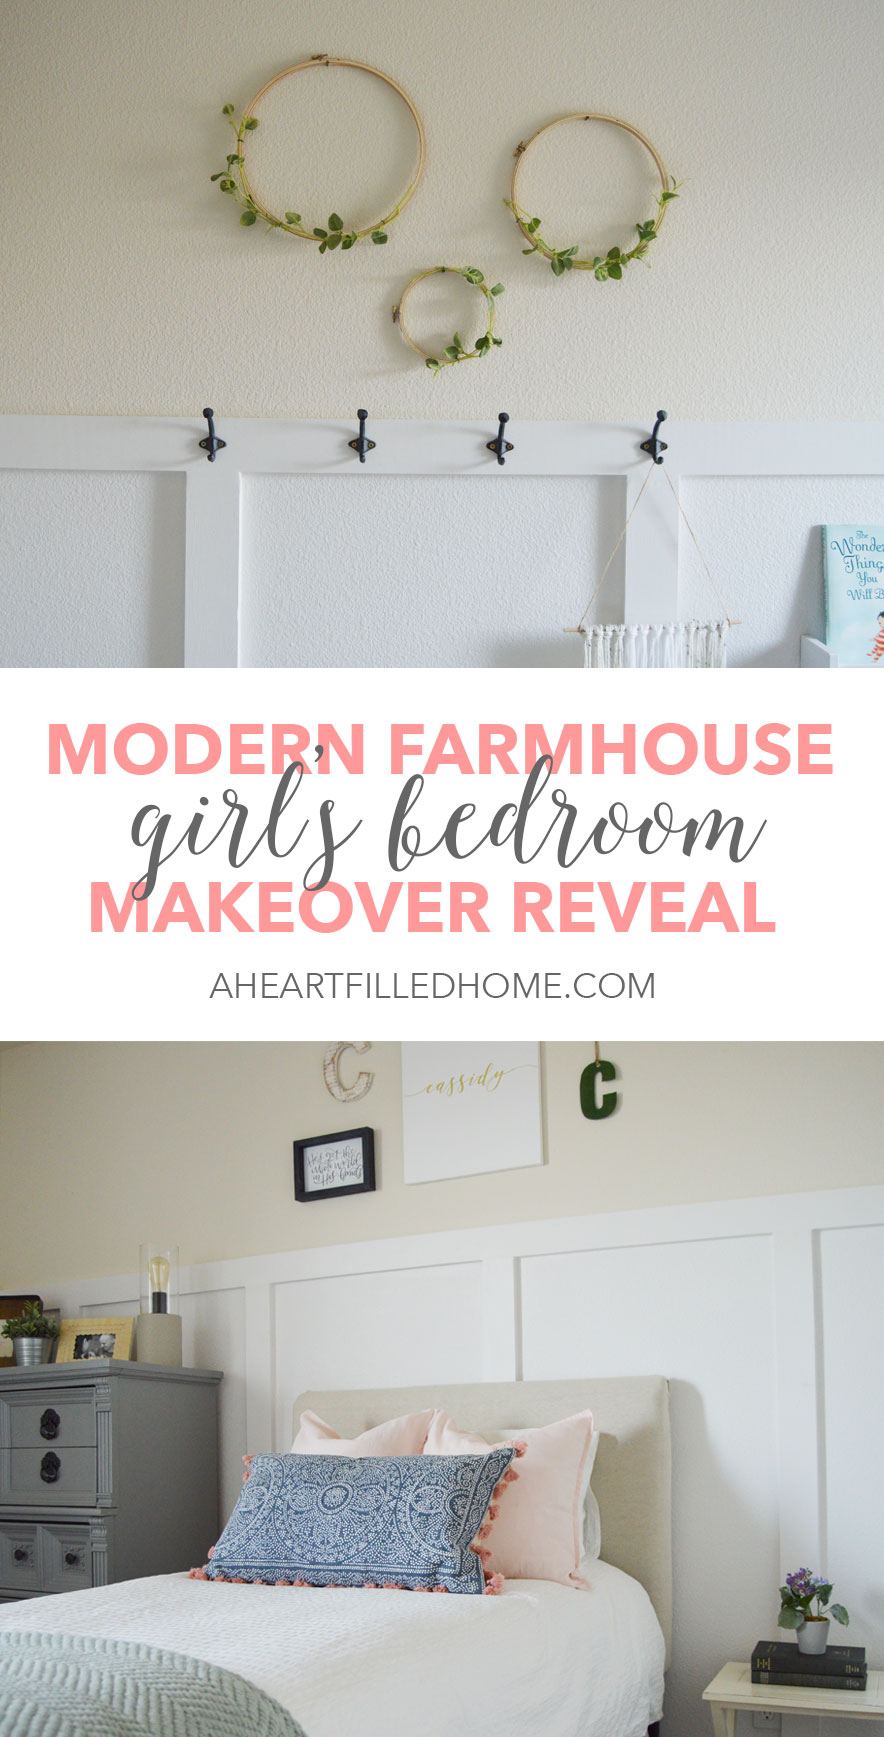 This modern farmhouse girl's bedroom looks beautiful! So many beautiful rustic and neutral decor ideas! Find it at aheartfilledhome.com